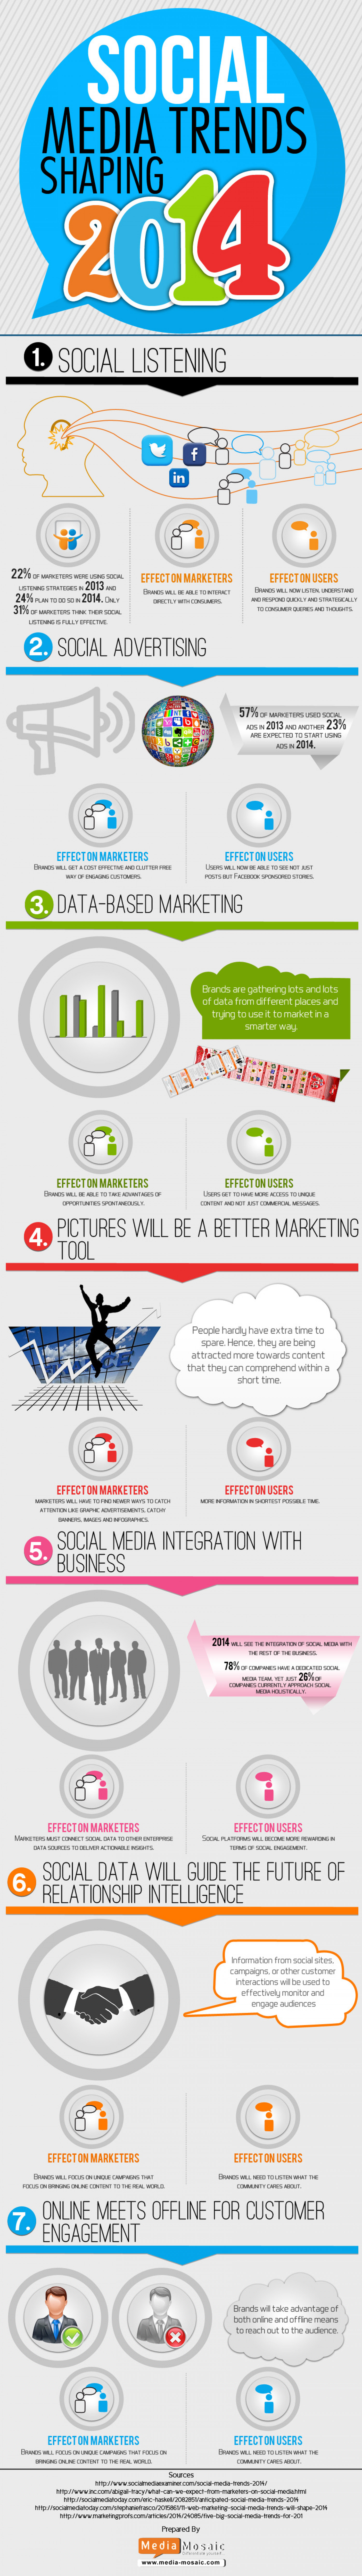 Social Media Shaping Trends 2014 Infographic Infographic